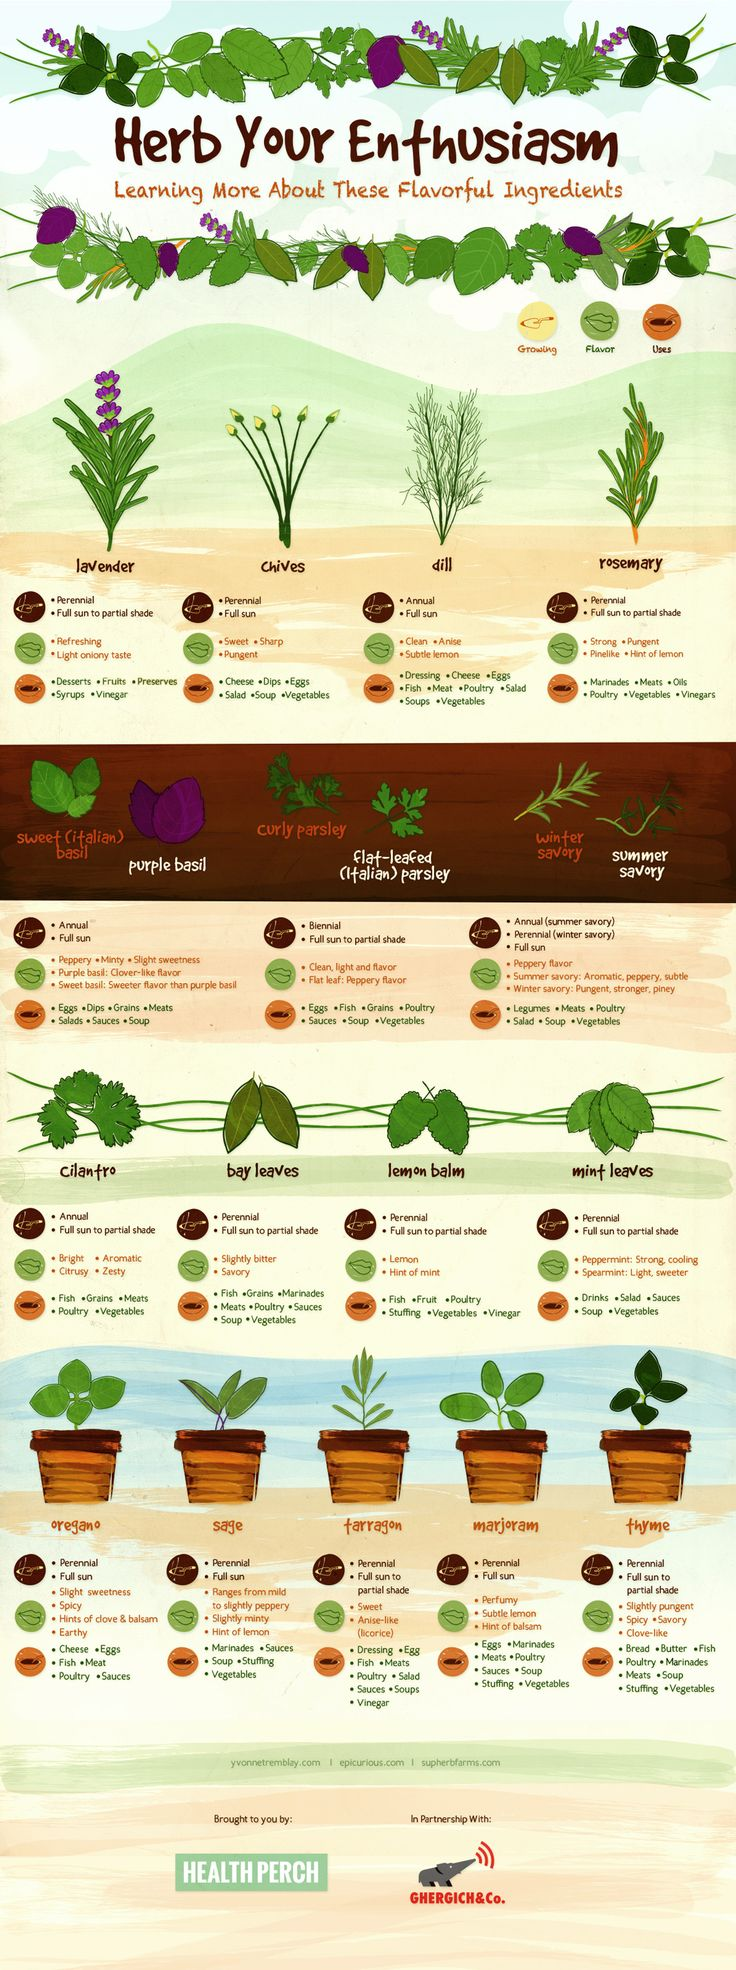 Save a space in your raised garden for growing herbs